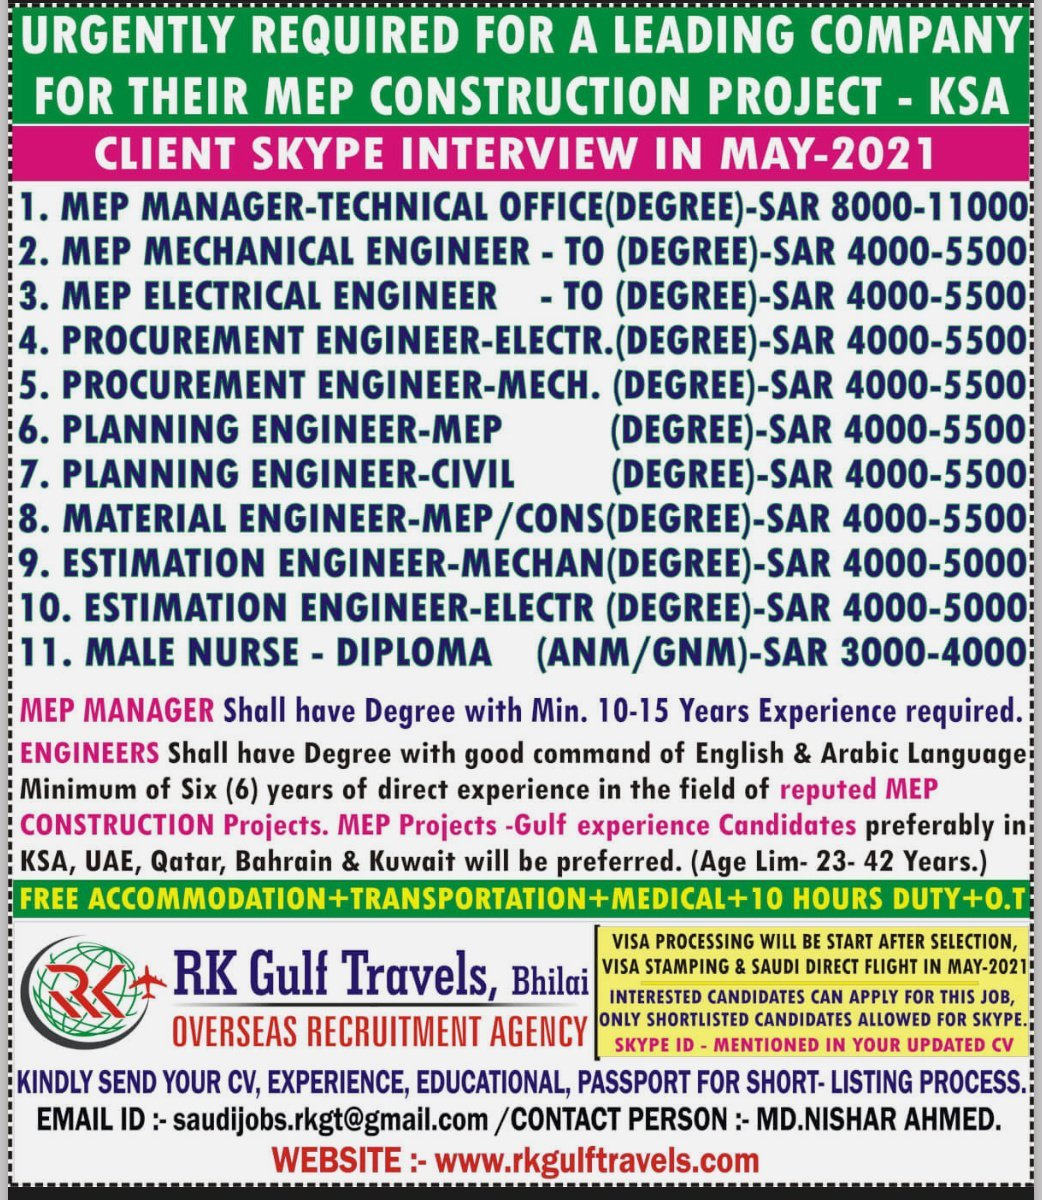 URGENTLY REQUIRED FOR A LEADING COMPANY FOR THEIR MEP CONSTRUCTION PROJECT – KSA